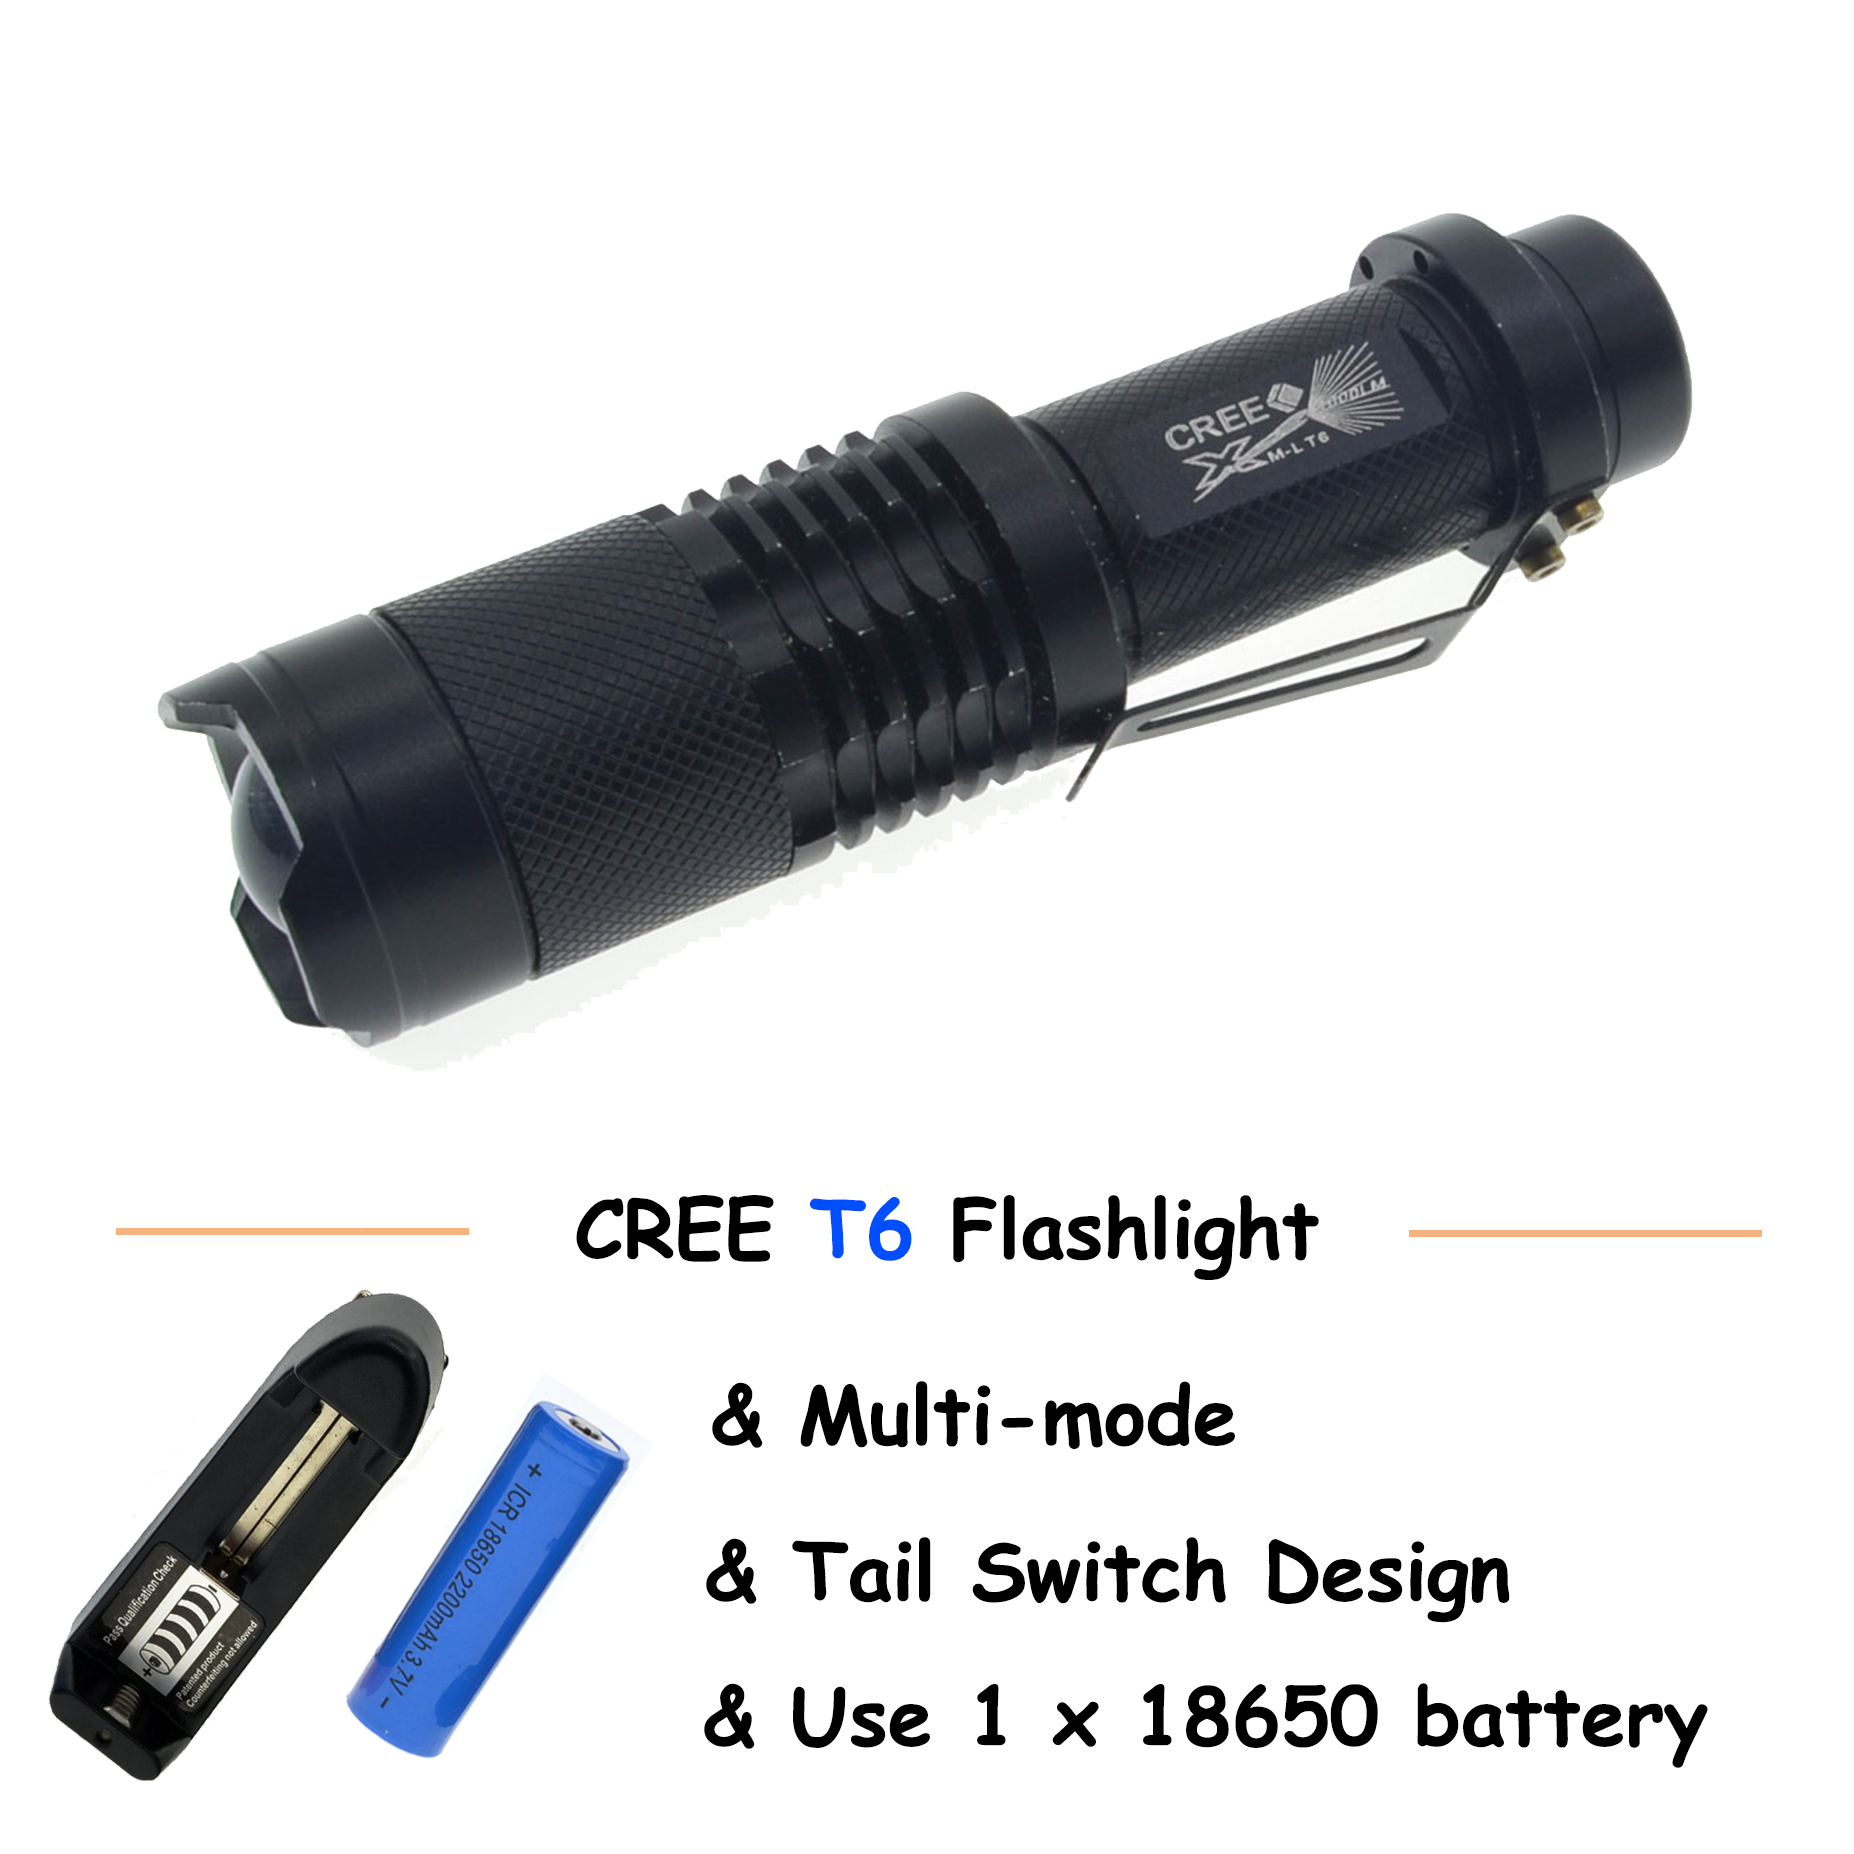 cree rechargeable flashlight led torch XM L T6 waterproof  5 mode lanterna flash light lamp battery 18650 with charger 6000 lm 3 led xm l t6 led flashlight torch 3t6 self defense lanterna 16850 flash light linterna led battery charger